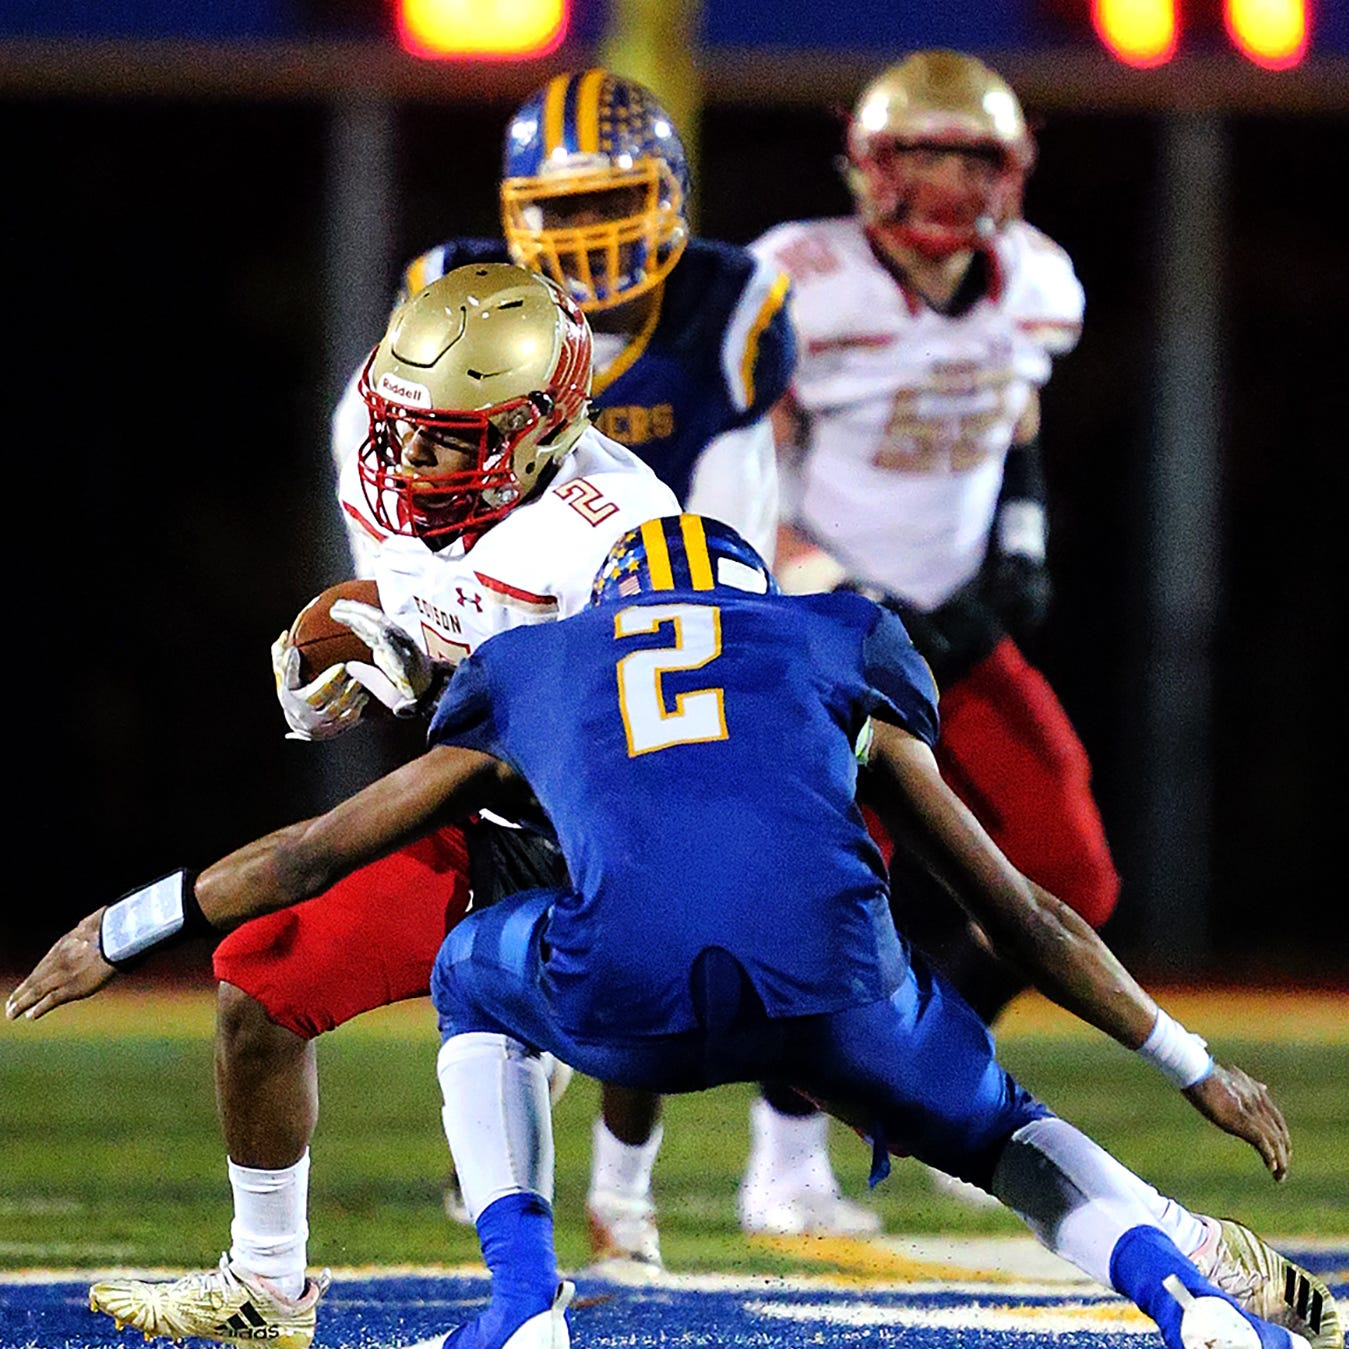 NJ football: Bailey rushes for career record as North Brunswick reaches sectional final